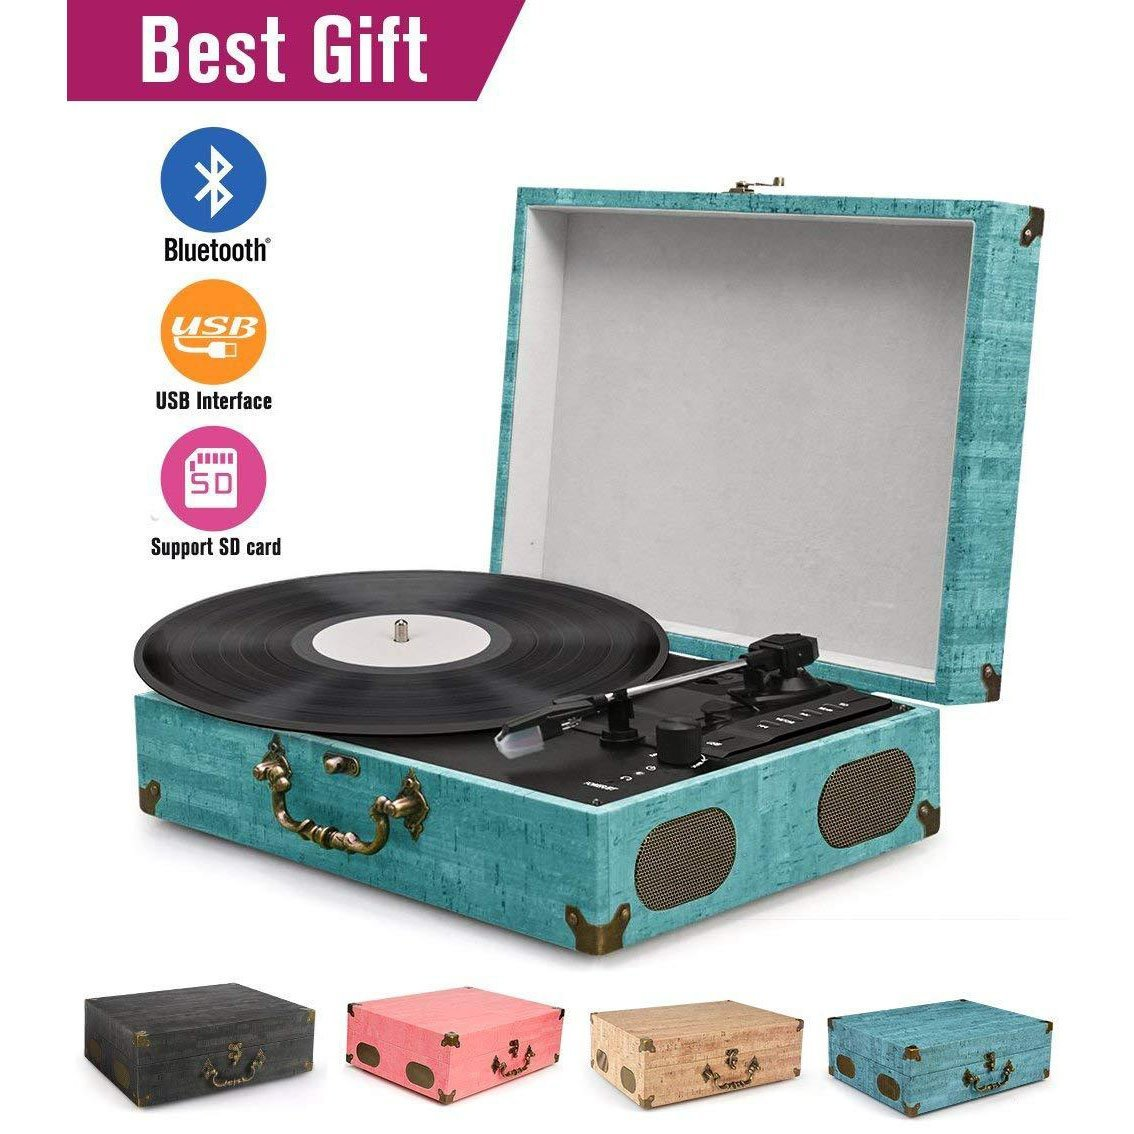 Portable Bluetooth 3 Stereo Speed Turntable,Sky Blue